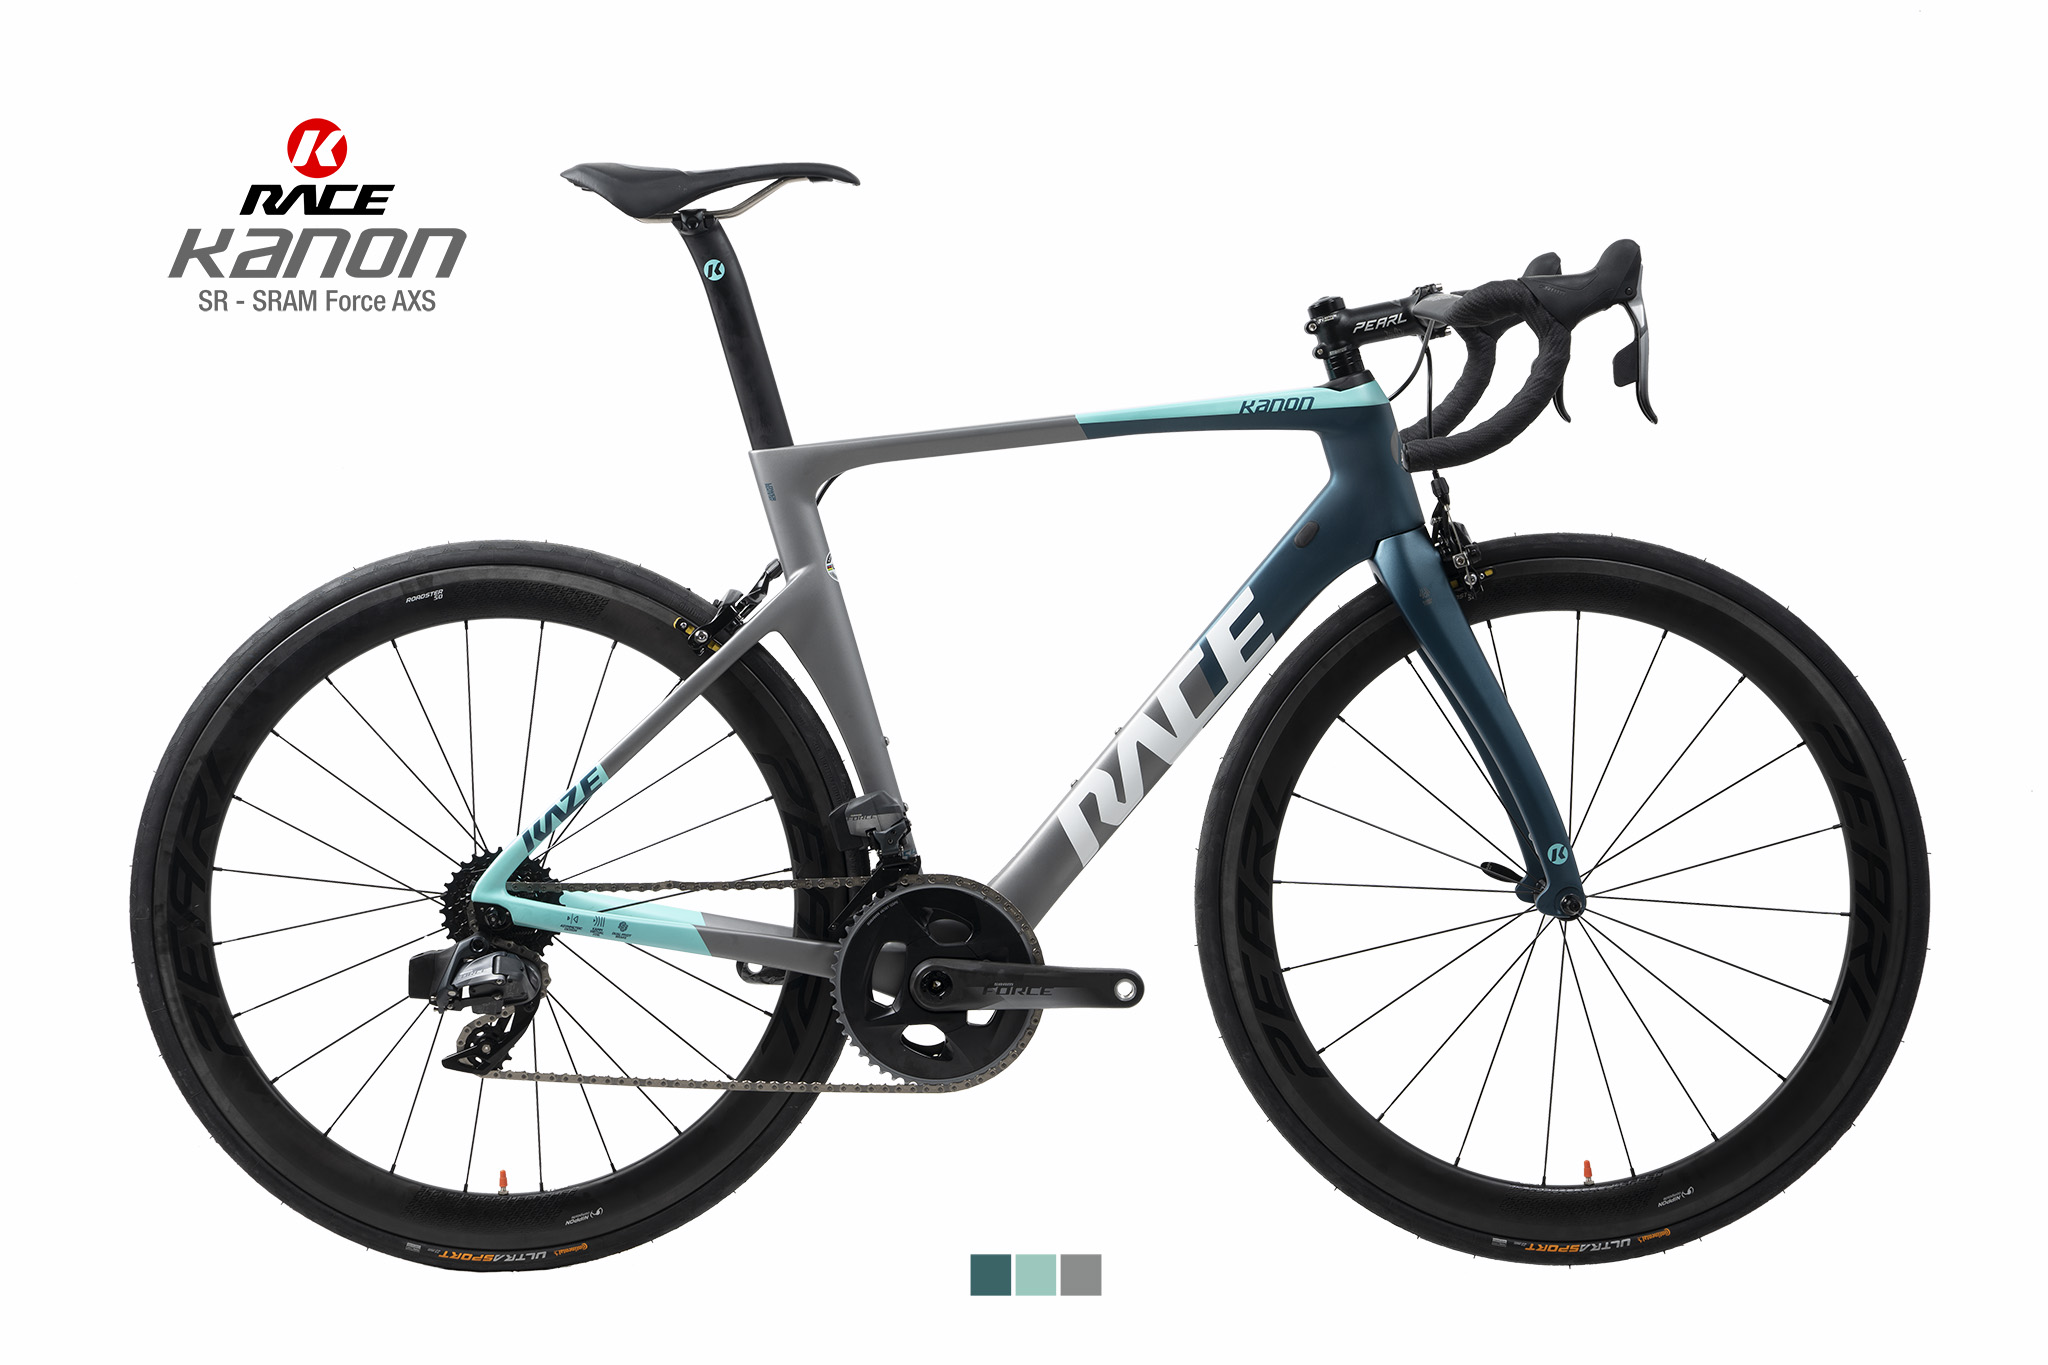 KAZE RACE | KANON DM-SR (SR version) SRAM Force eTap AXS™